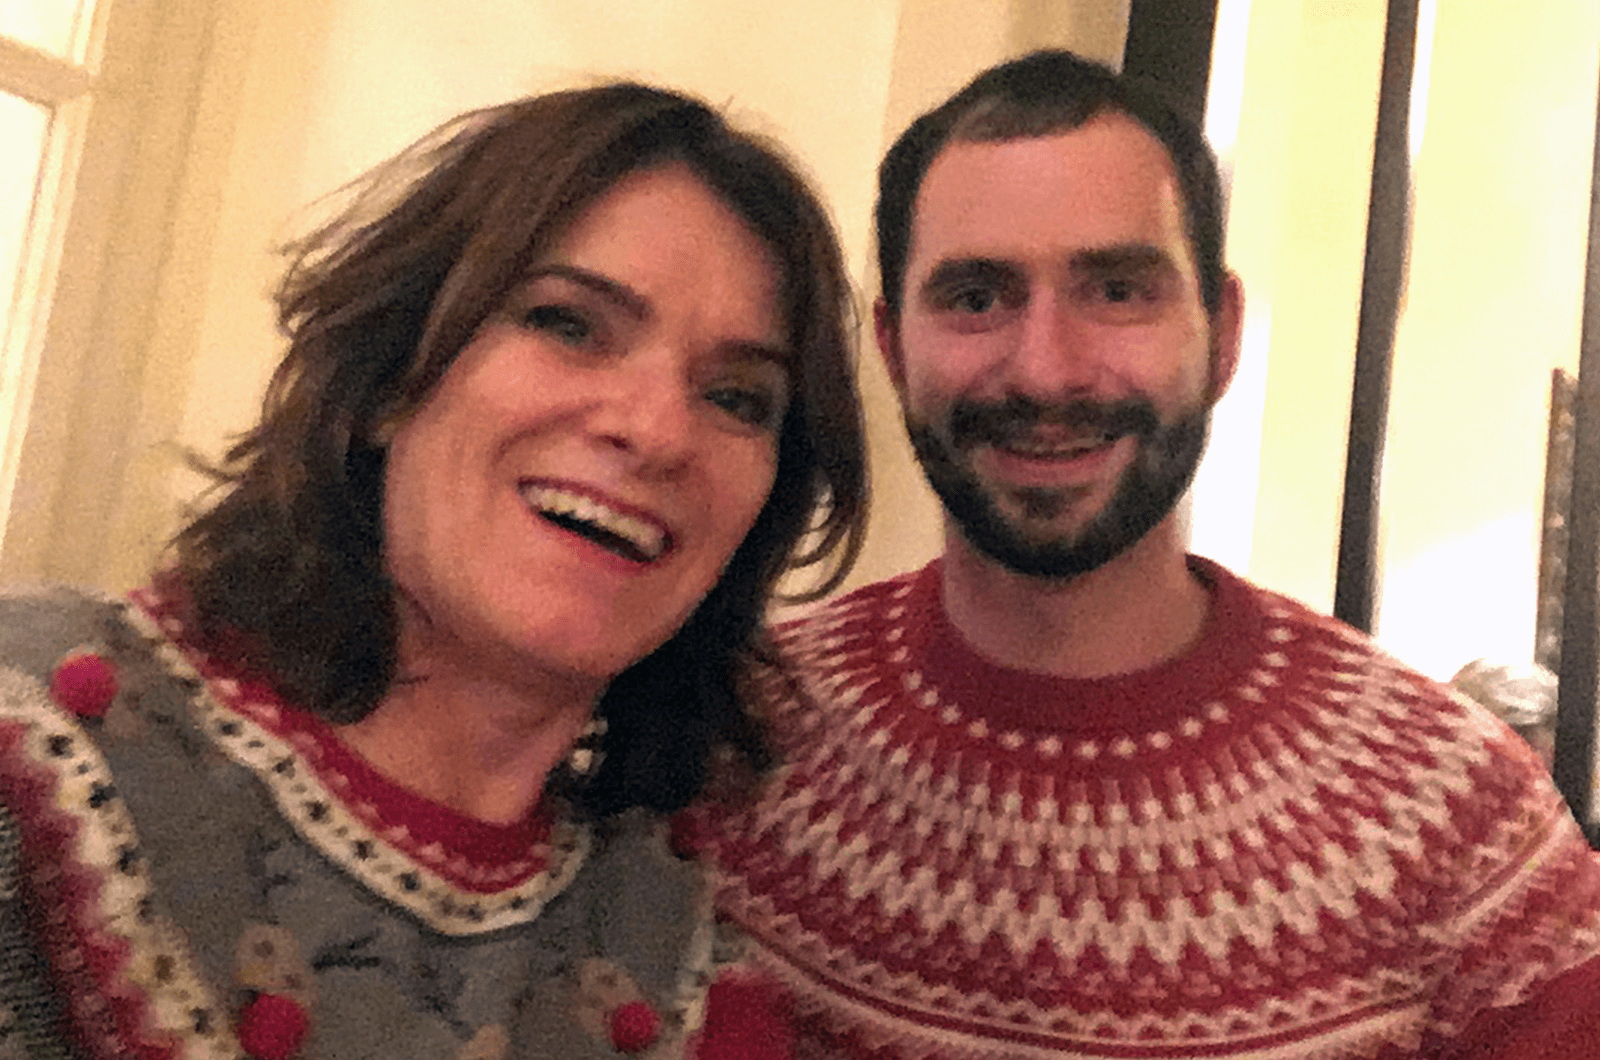 Man and woman posing in sweaters